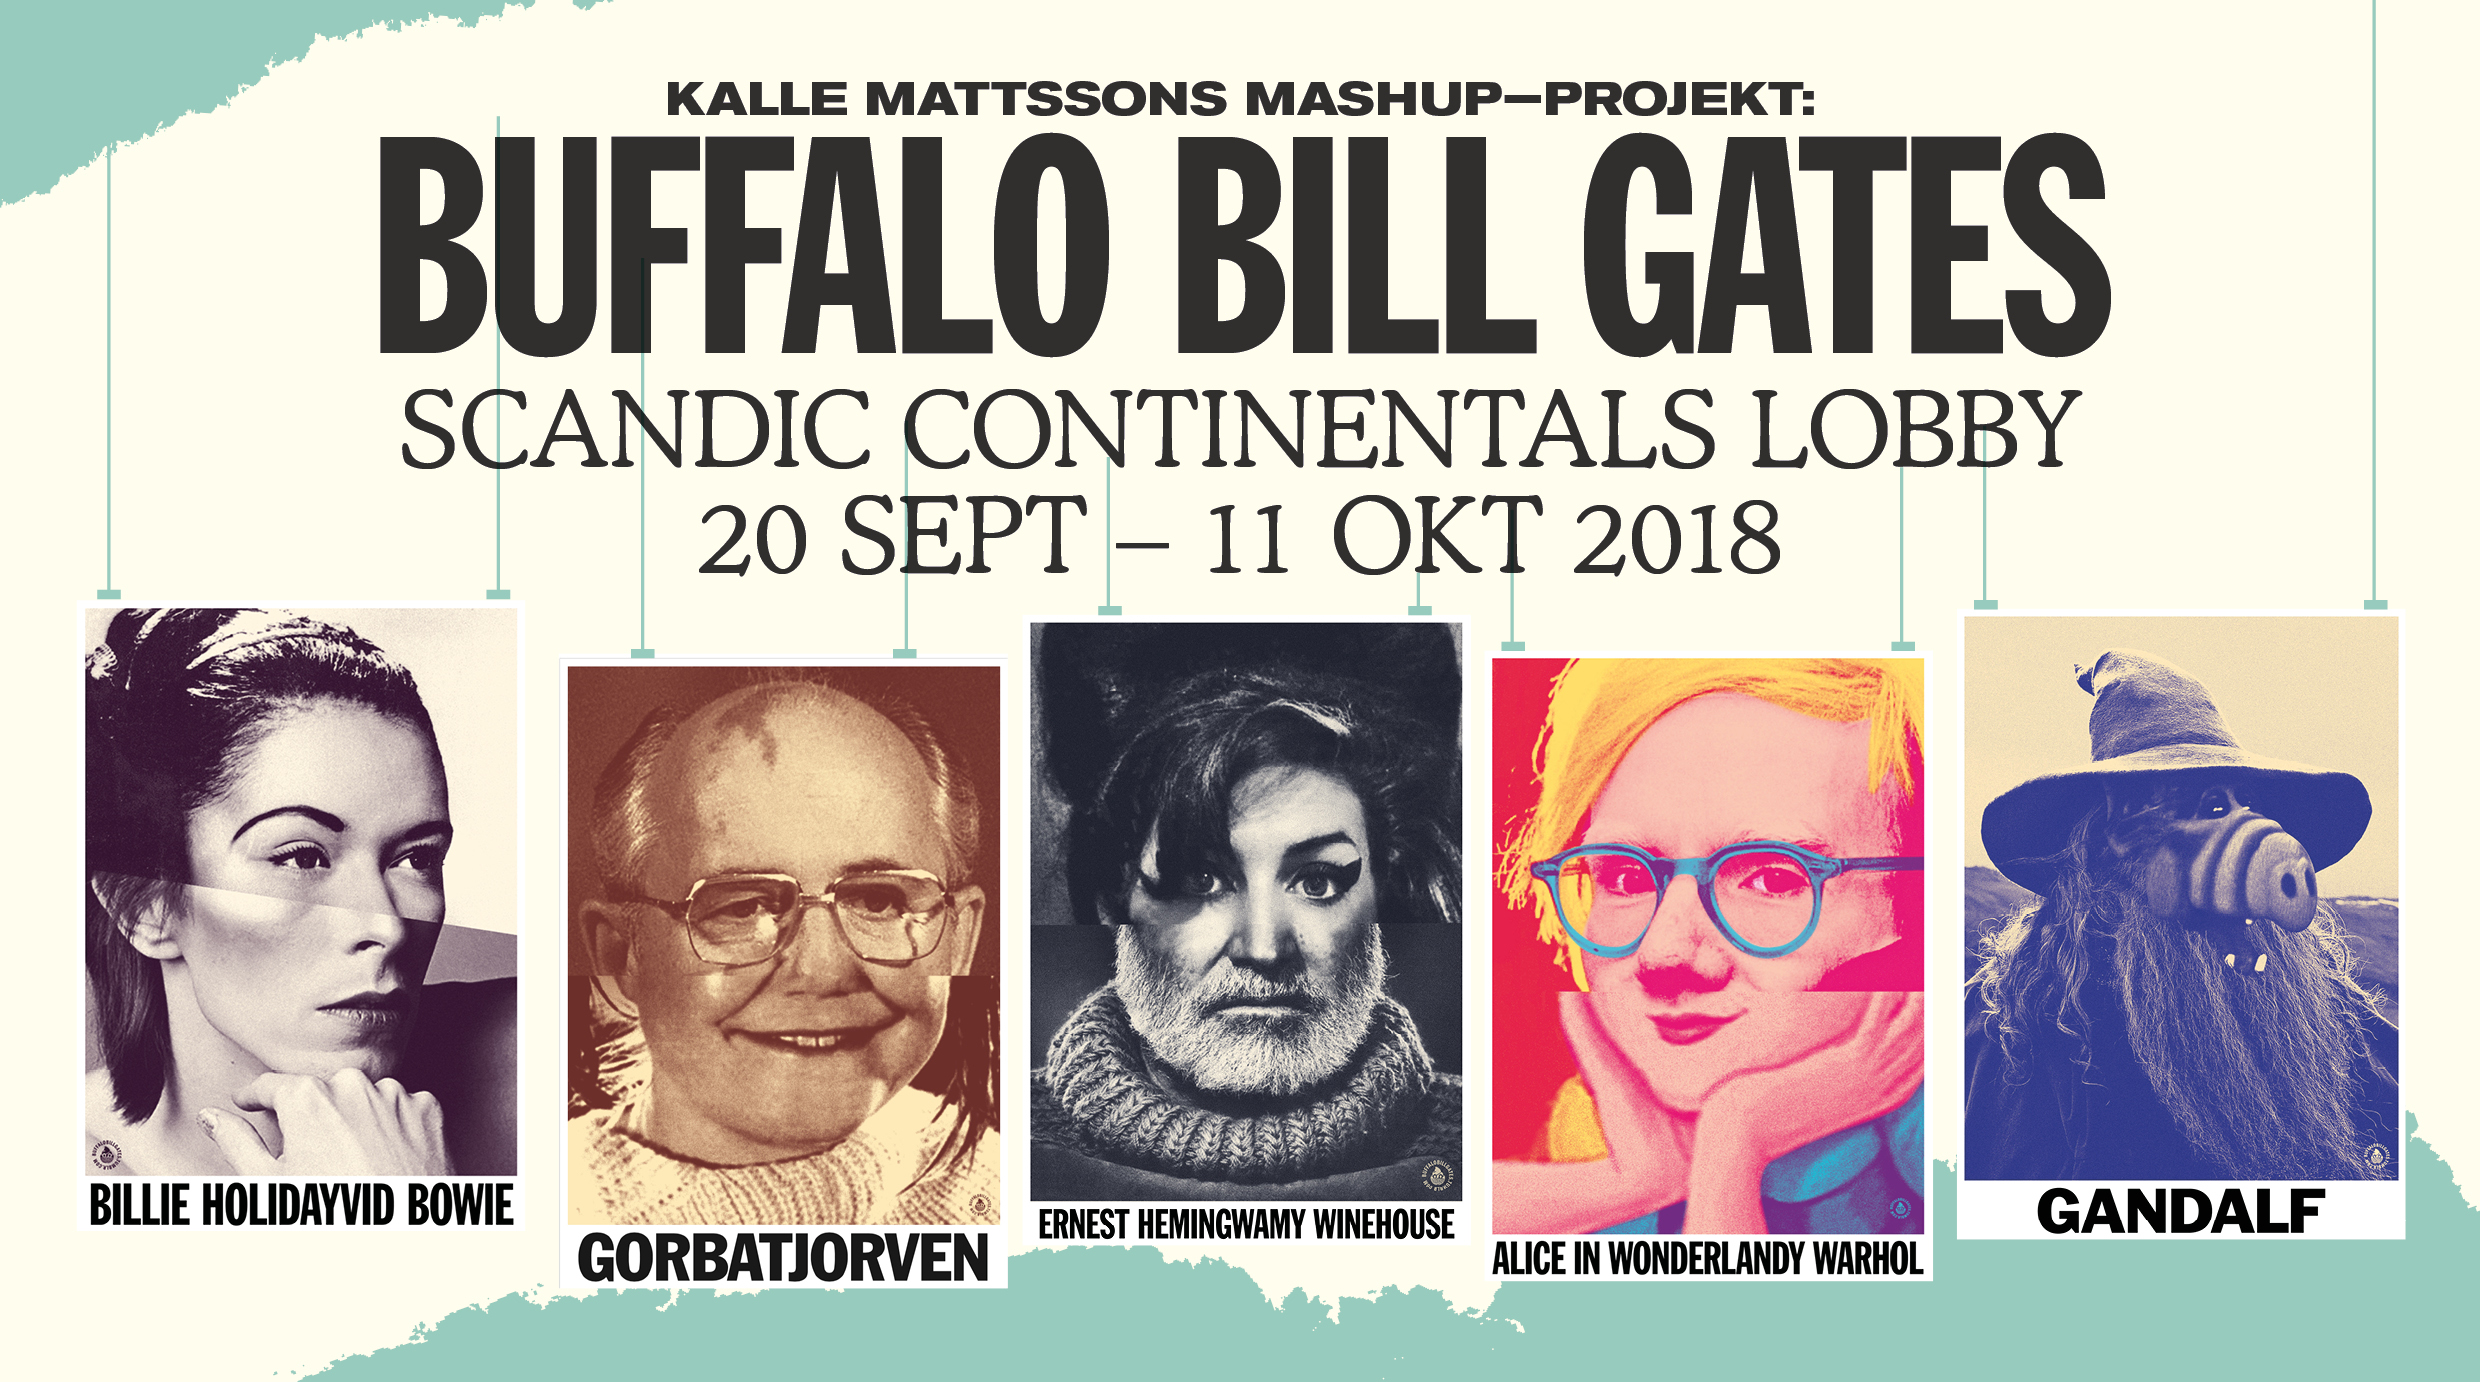 Buffalo Bill Gates Exhibition  Producing an illustration exhibition called  Buffalo Bill Gates  with artist Kalle Mattsson at Scandic Continental.